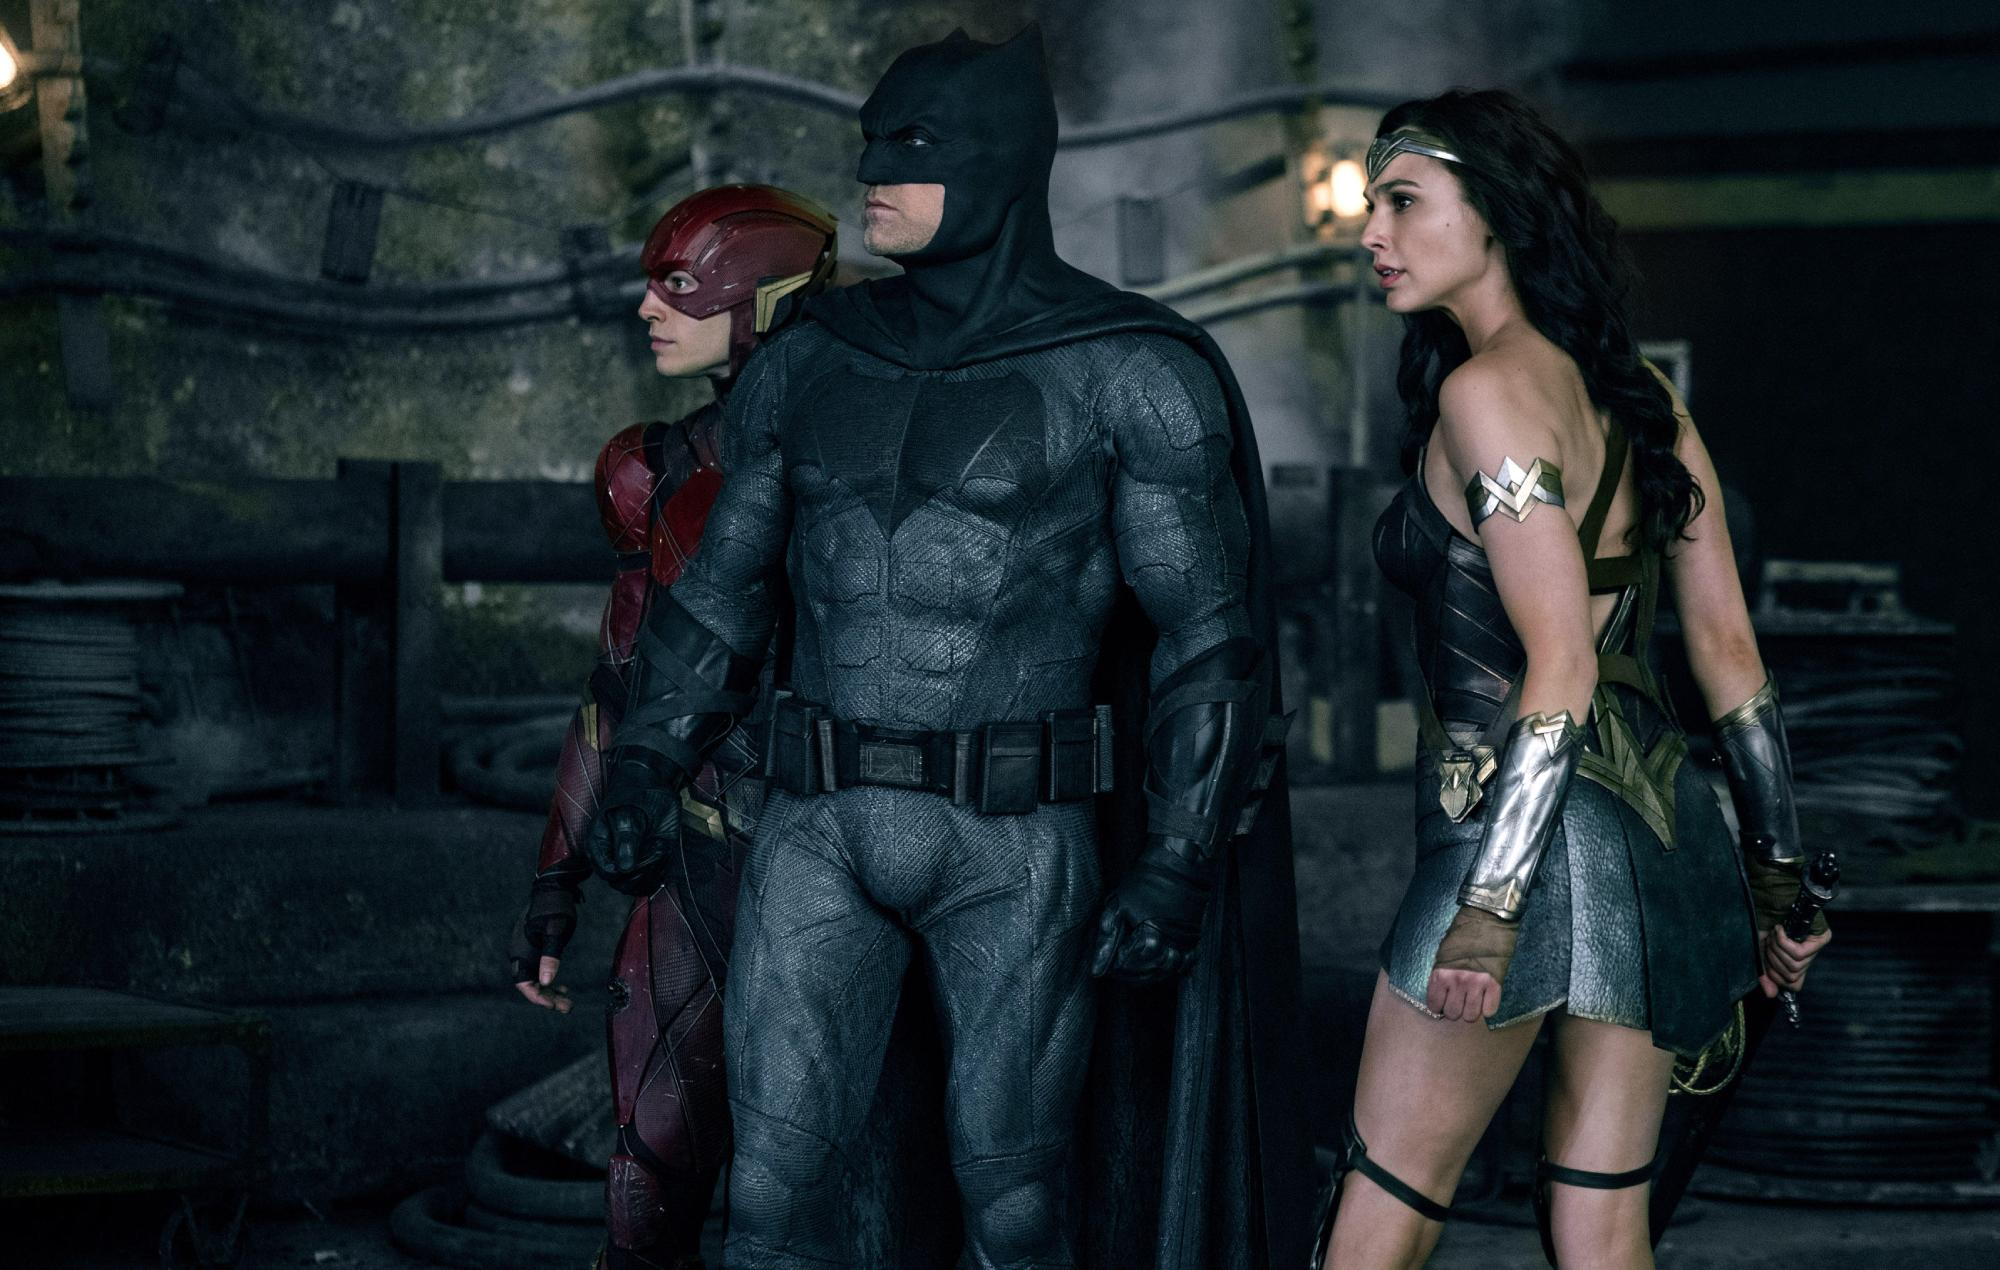 Villains of 'Zack Snyder's Justice League' get the spotlight in new teaser